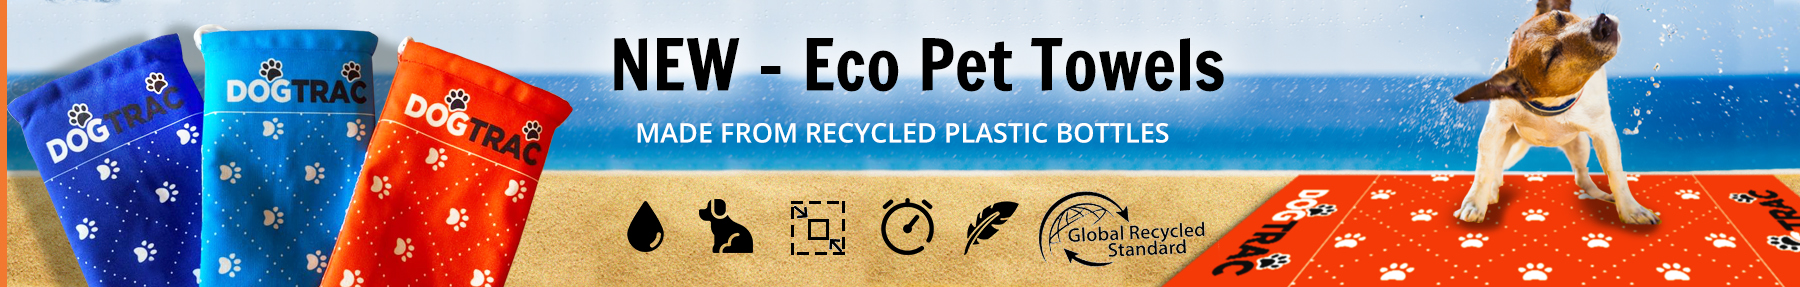 Eco Pet Towels